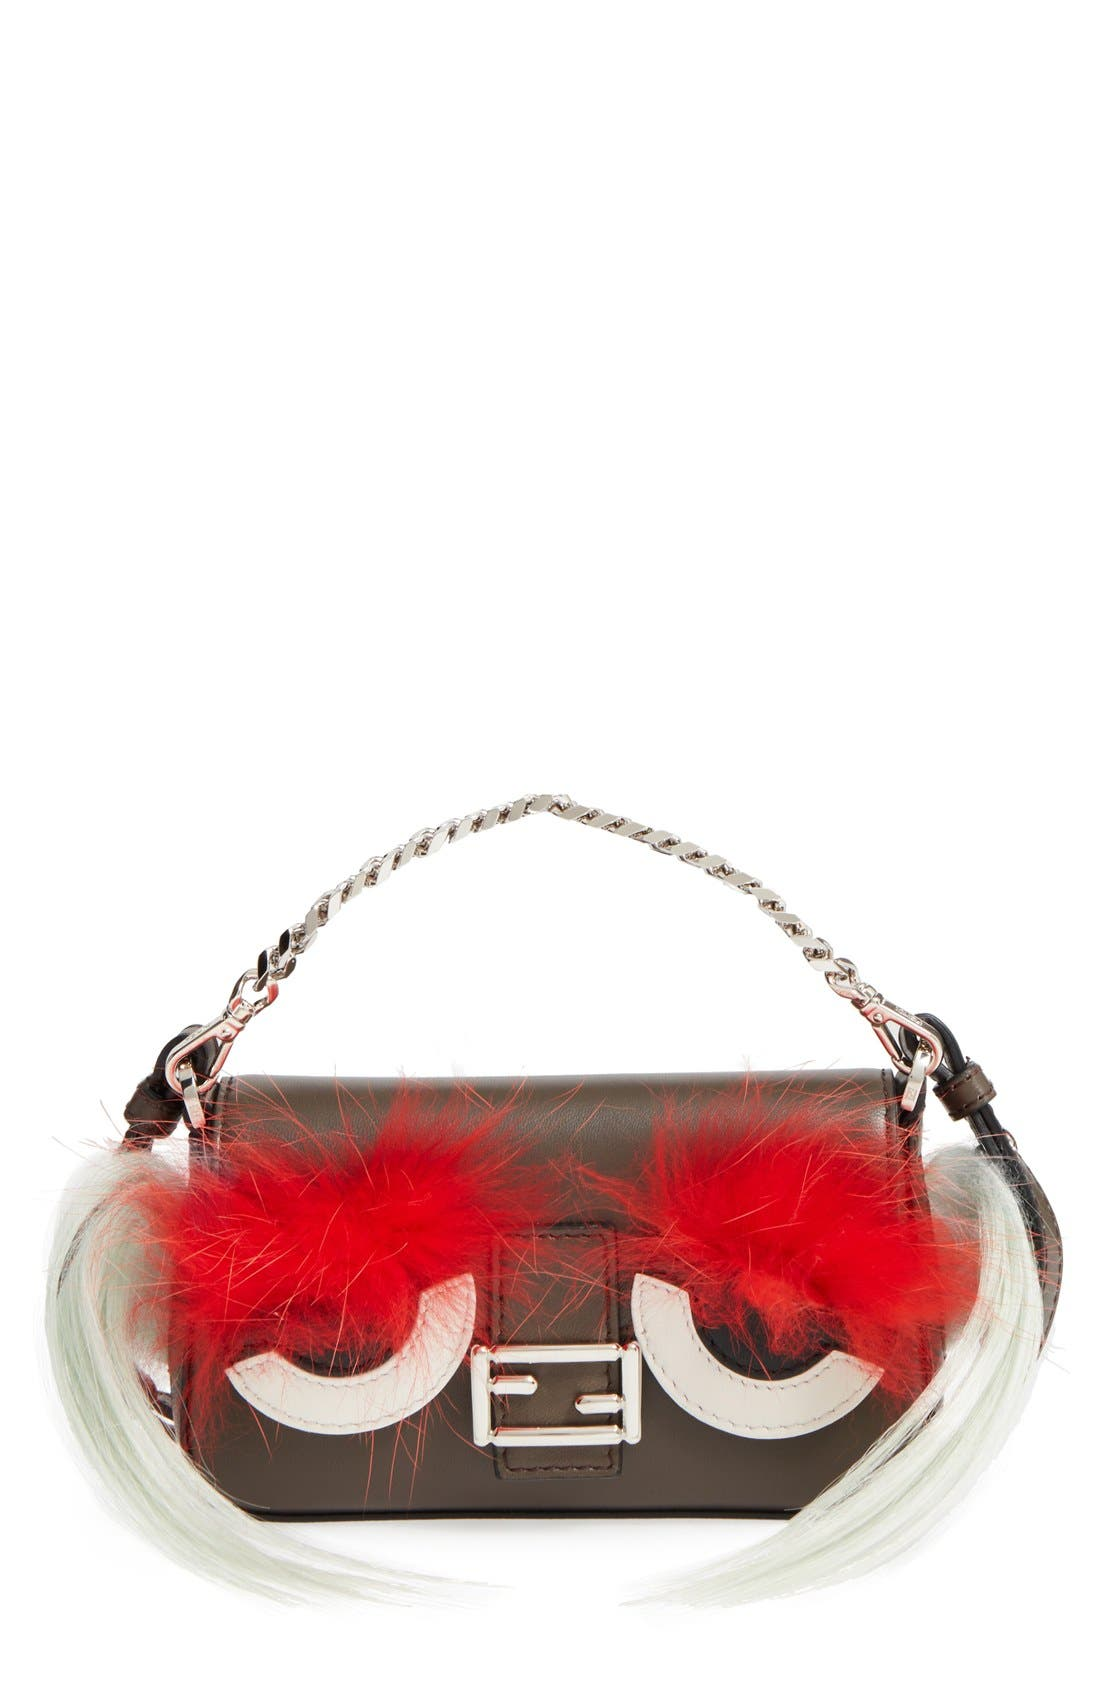 Main Image - Fendi 'Micro Monster' Lambskin Leather, Genuine Fox Fur & Genuine Kidassia Goat Fur Baguette